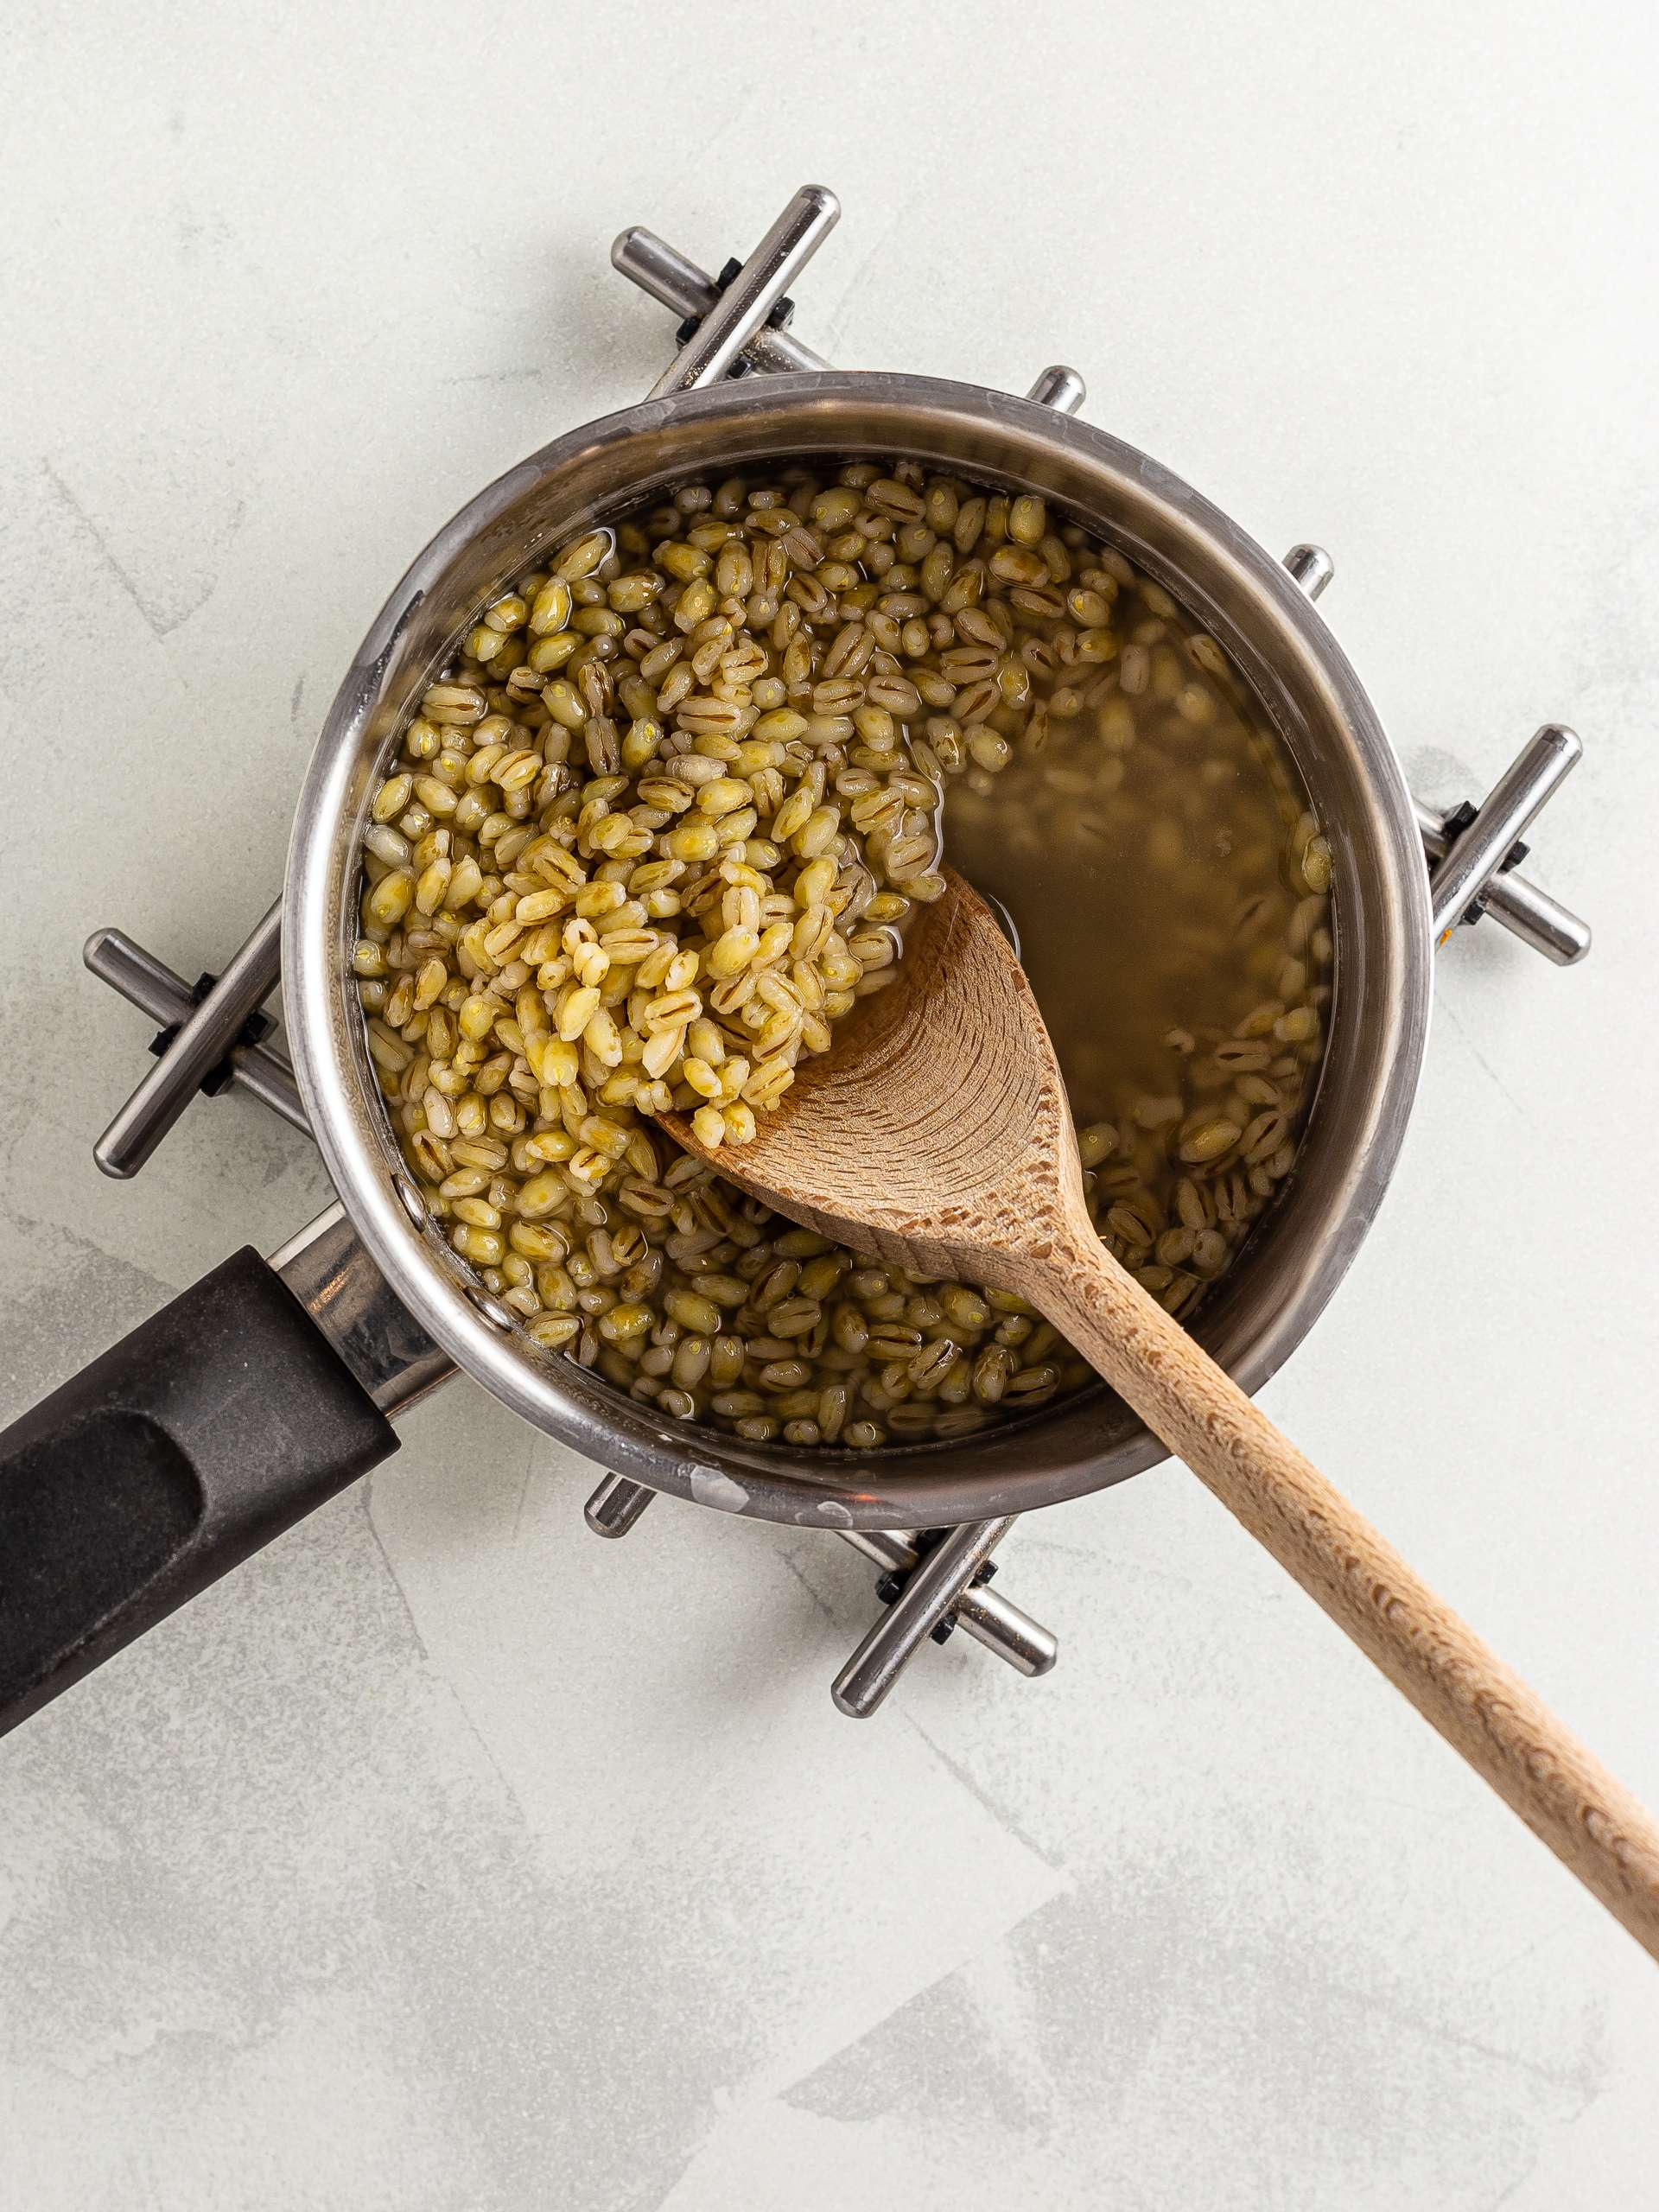 Cooked barley in a pot